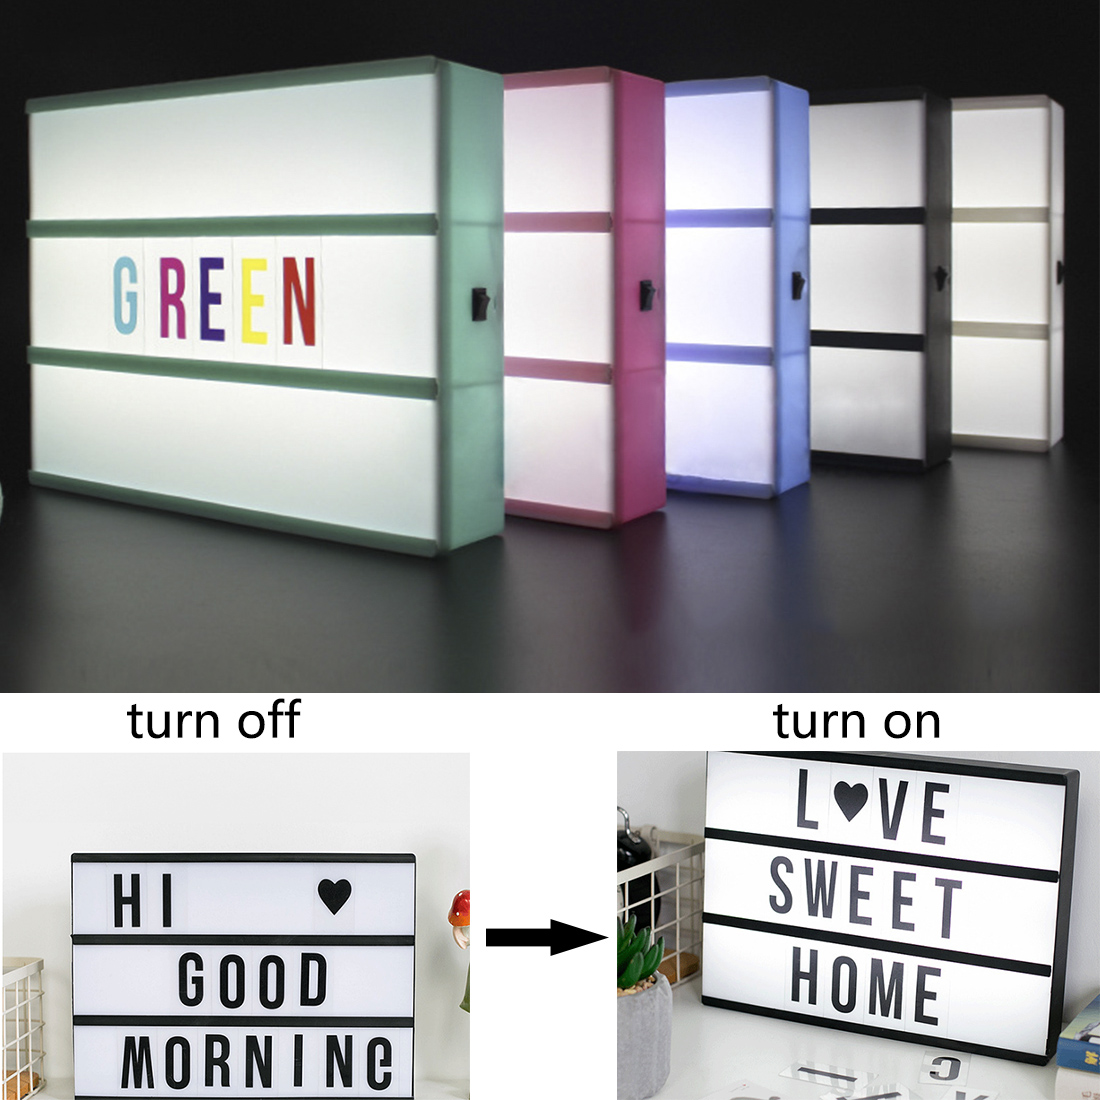 LED Light Box Letters DIY Lightbox Black Letters Cards Combination Night Light A6 Size White Pink Black Green Cinema Lamp